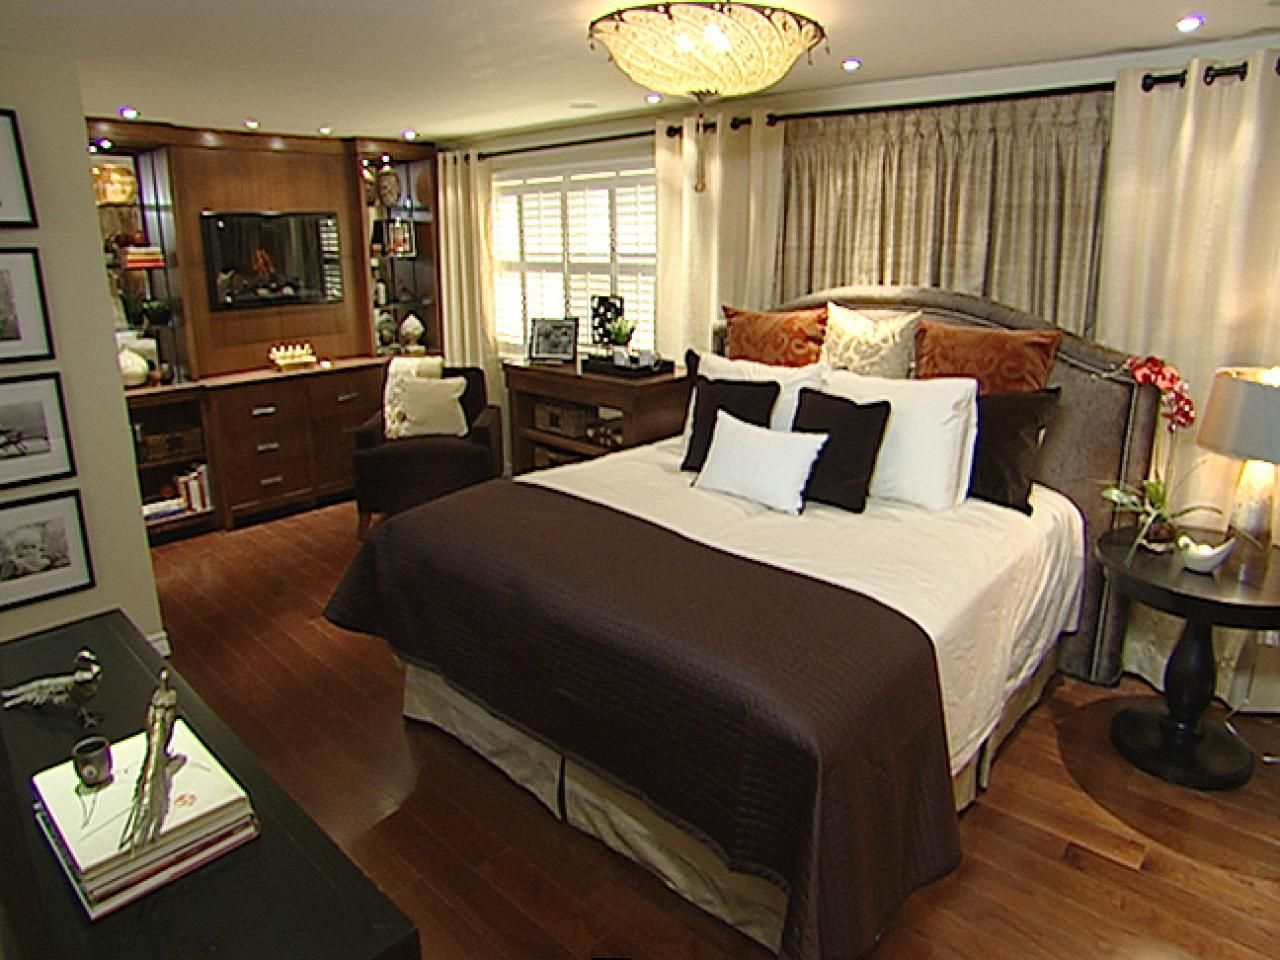 10 Bedroom Retreats From Candice Olson. Rustic Bedroom DecorationsBedroom  Decorating IdeasRustic ...